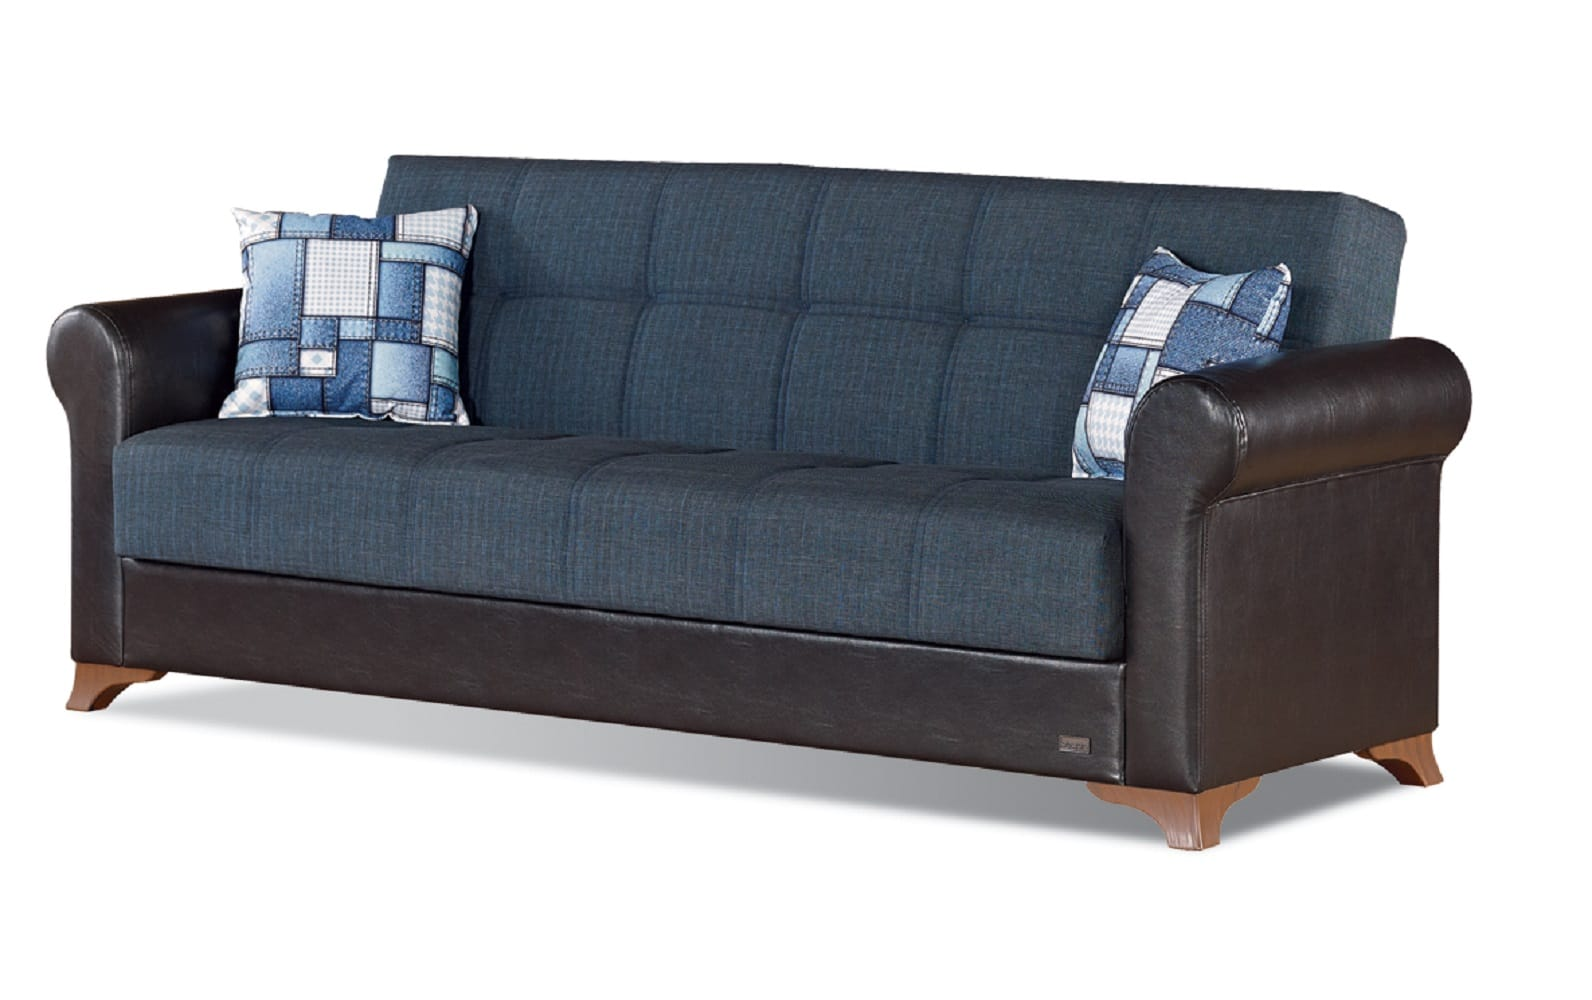 Sensational Hudson Grey Fabric Sofa Bed By Empire Furniture Usa Home Remodeling Inspirations Gresiscottssportslandcom